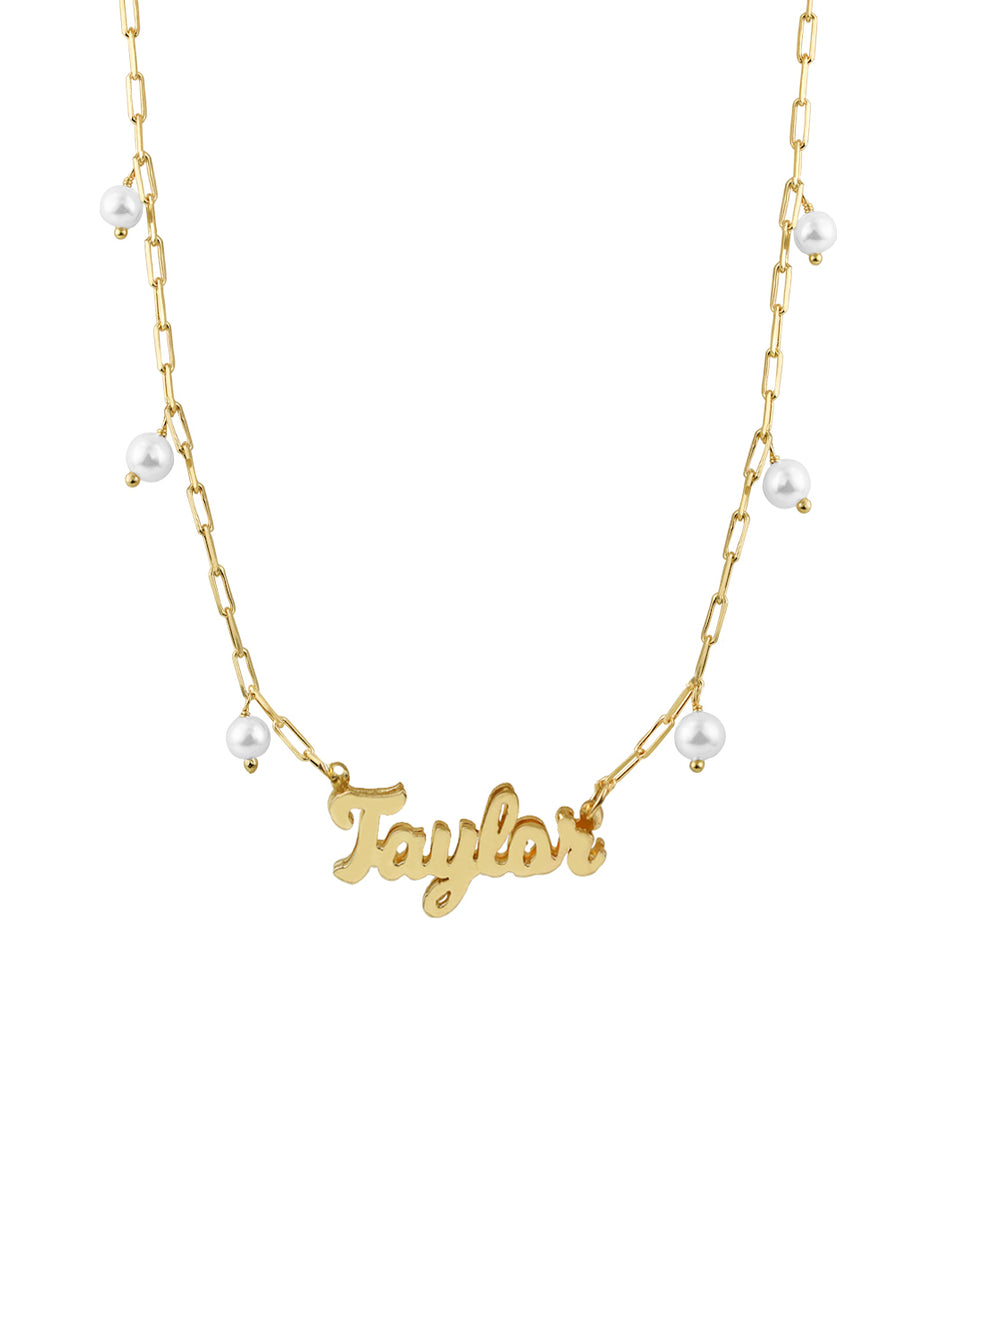 THE SCRIPT PEARL NAMEPLATE NECKLACE